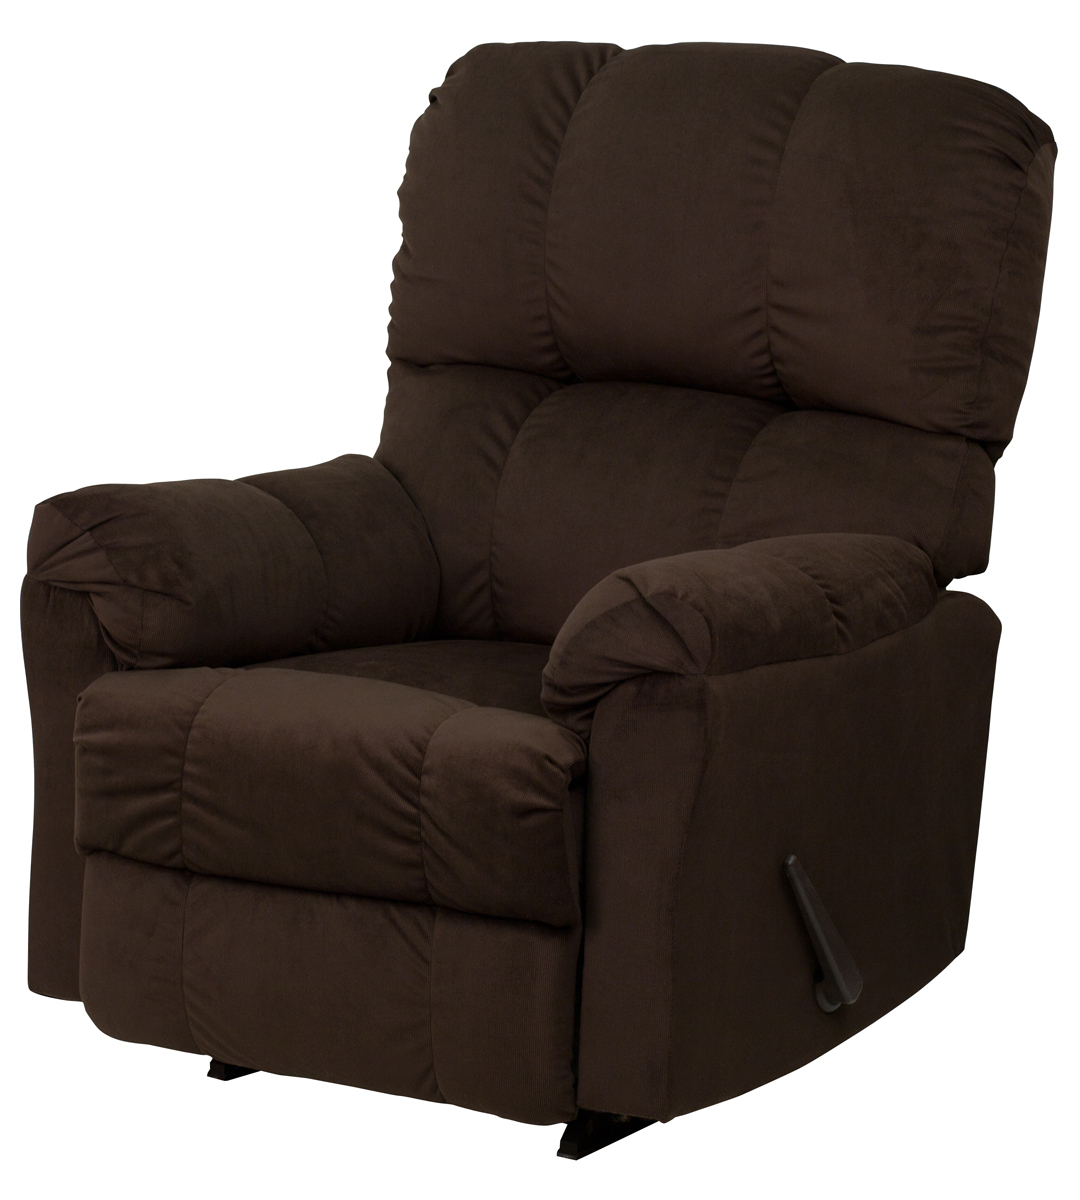 Newest Contemporary Top Hat Chocolate Microfiber Rocker Recliner Pertaining To Hercules Chocolate Swivel Glider Recliners (Gallery 11 of 20)